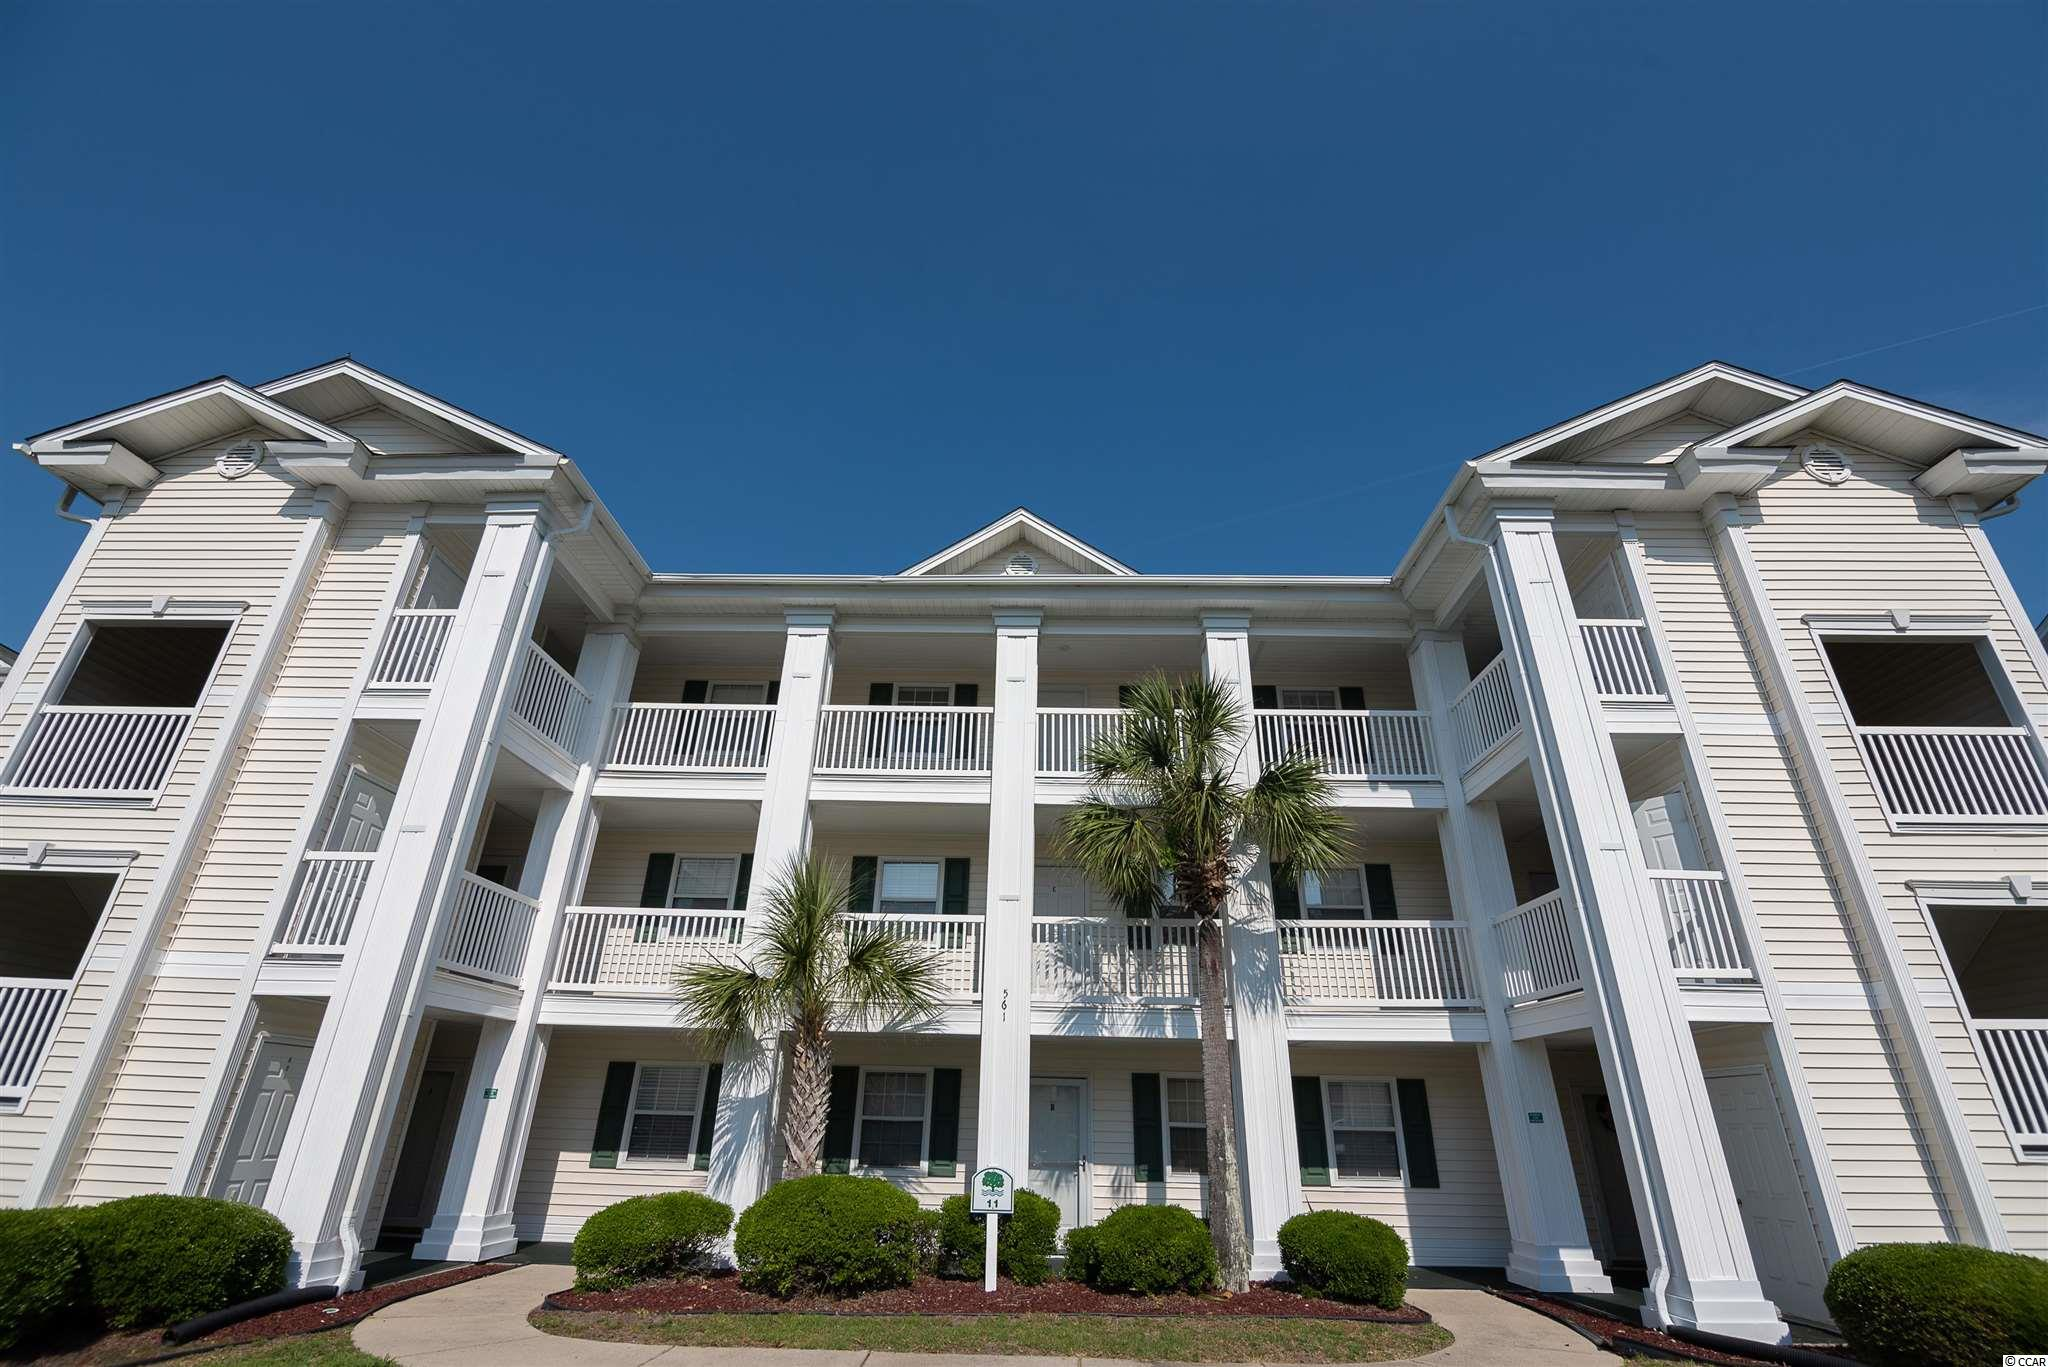 Check Out This GROUND FLOOR 2 Bedroom Unit in the Highly Desired River Oaks!  These Condos Only Pop Up Once In Awhile, and This One is Situated Right On The Golf Course, so You Can Look Out at the Pool From Your Oversized Screened In Porch - 24 X 6...Much Larger Than The Others.  Additional Features Include Breakfast Bar, Outside Storage, All Appliances, and if you like, a Great Tenant!  Upgrades Include New HVAC in 2018, New Hot Water Heater in 2018, New Washing Machine in 2018, and New garbage Disposal in 2020.  Don't Sleep on This One.  Get Ready For WOW & Call Your Agent NOW!